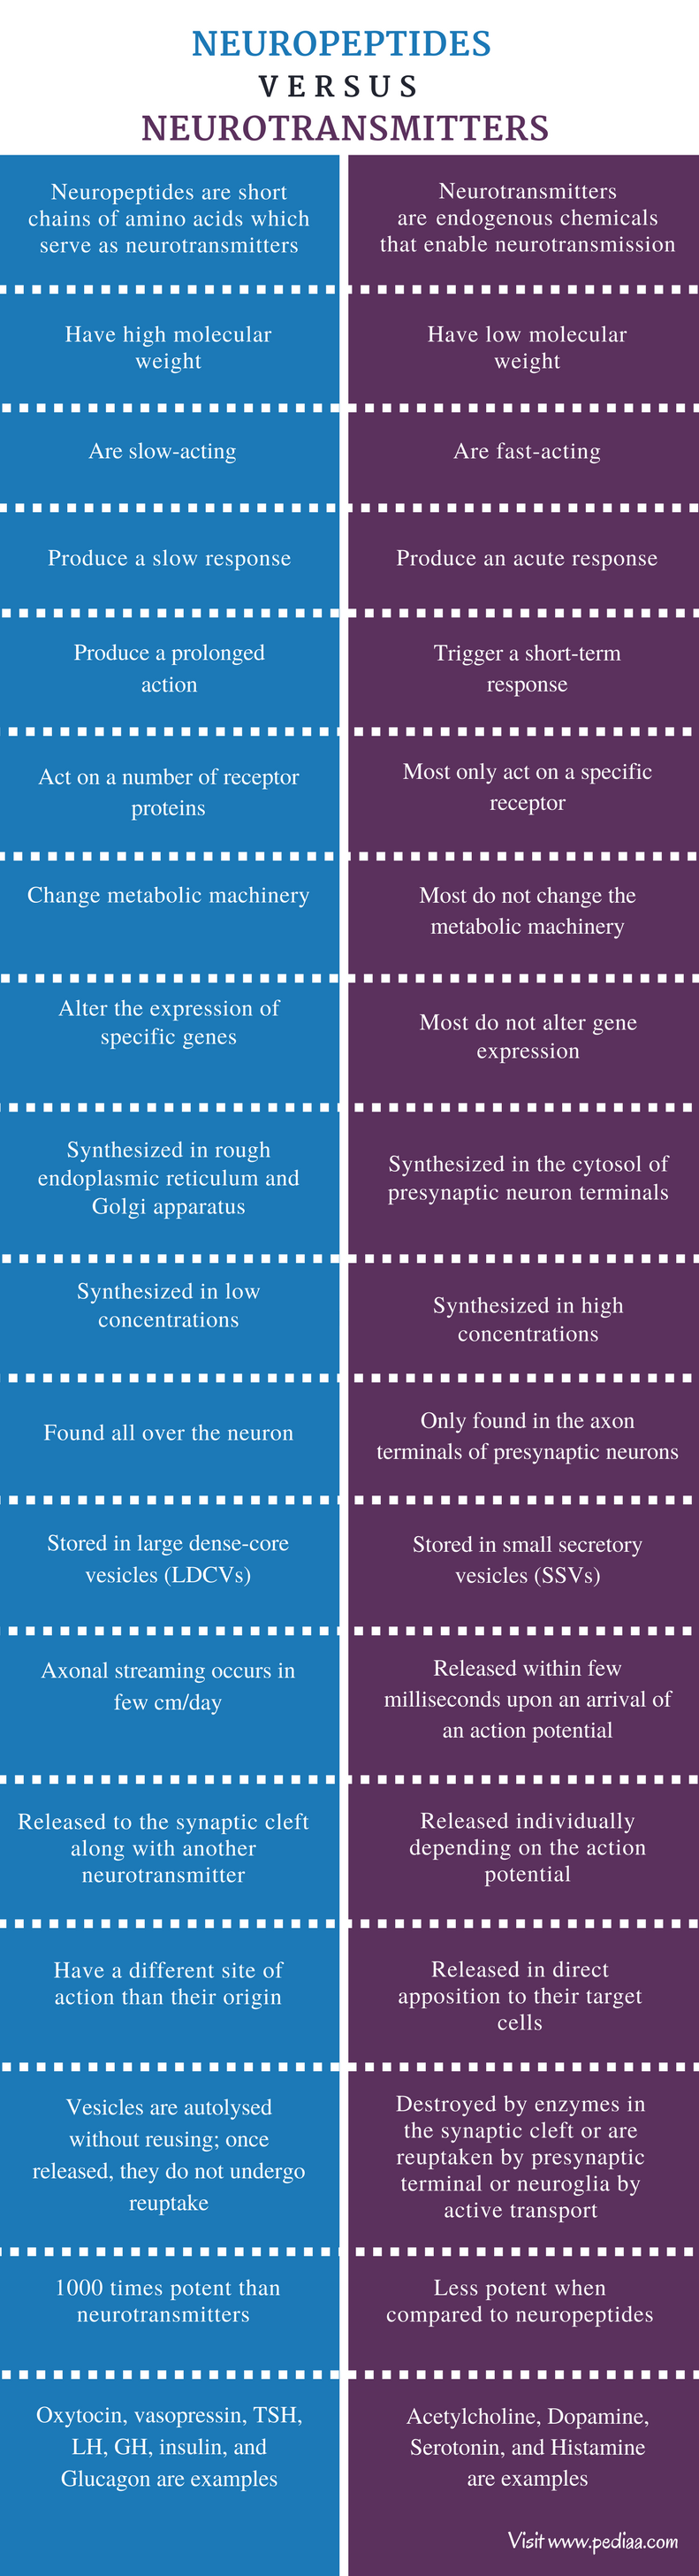 Difference Between Neuropeptides and Neurotransmitters - Comparison Summary